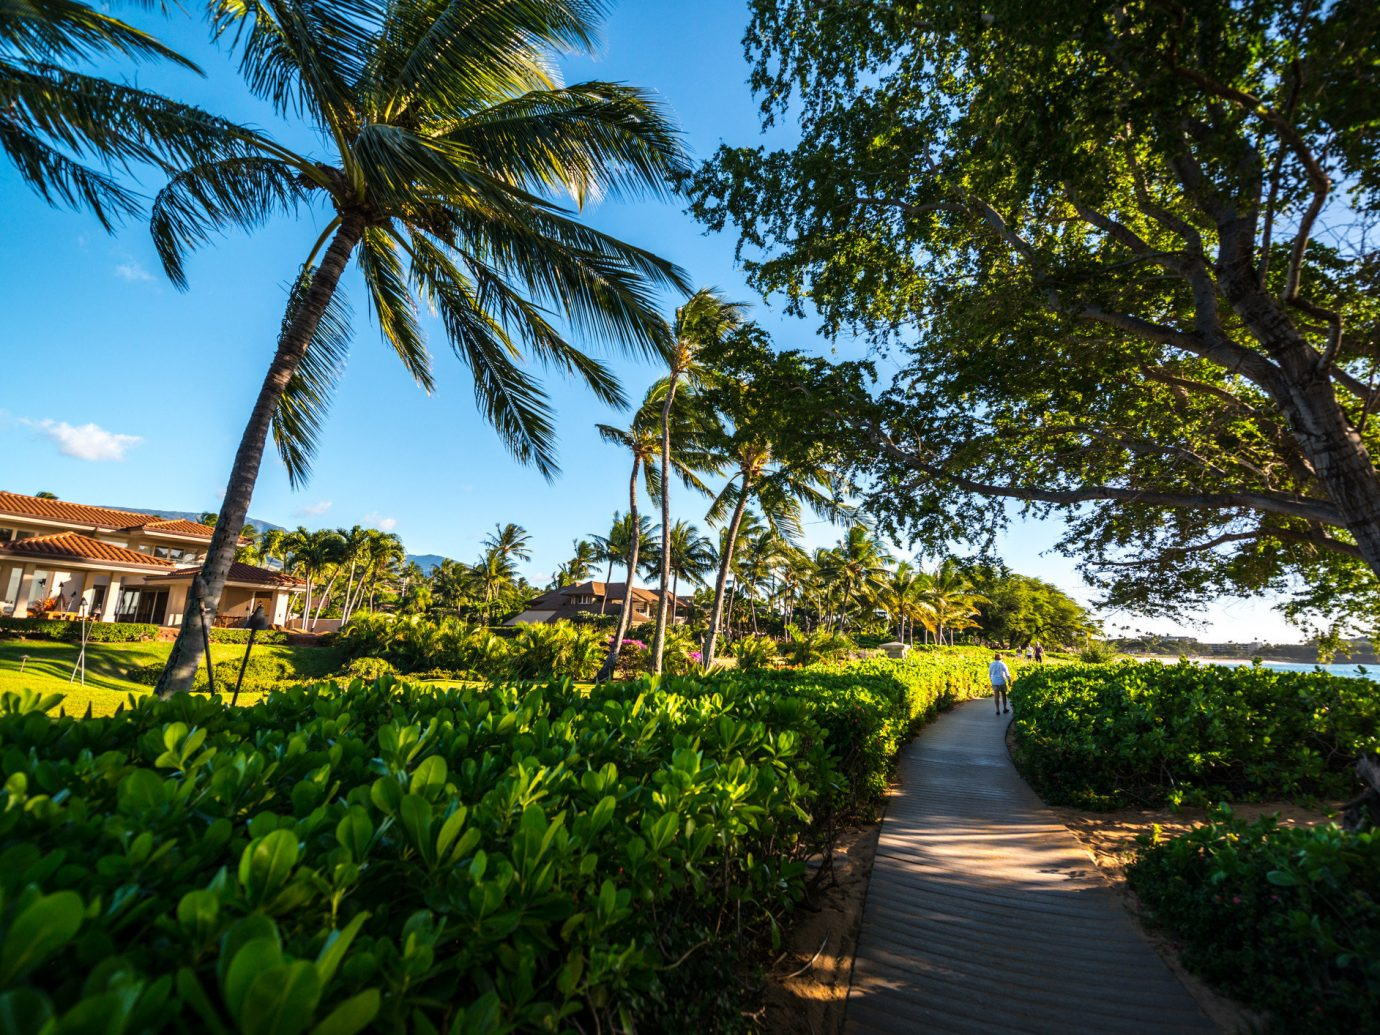 Beach tree outdoor sky plant green palm botany flower arecales woody plant leaf River plantation palm family estate rural area Garden agriculture sunlight walkway tropics Resort park bushes surrounded lined